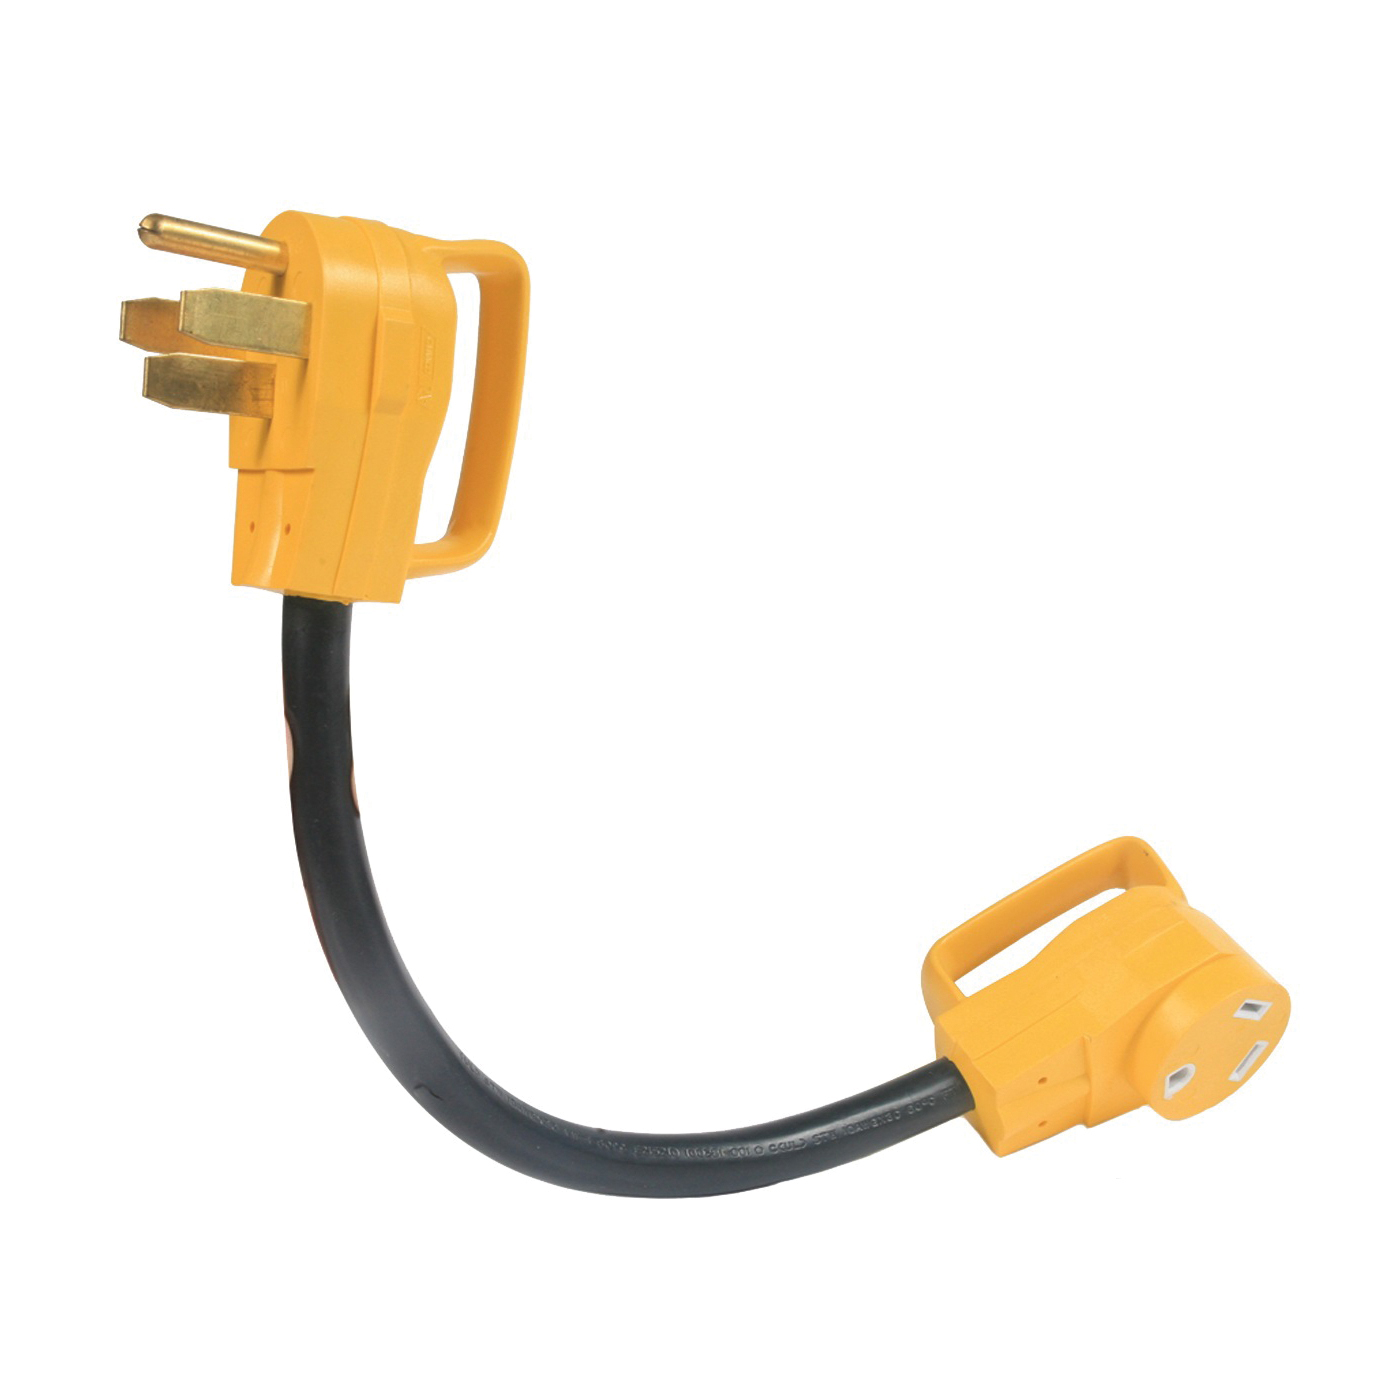 Picture of CAMCO 55173 Power Grip Adapter, 30 A Female, 50 A Male, 125 V, Male, Female